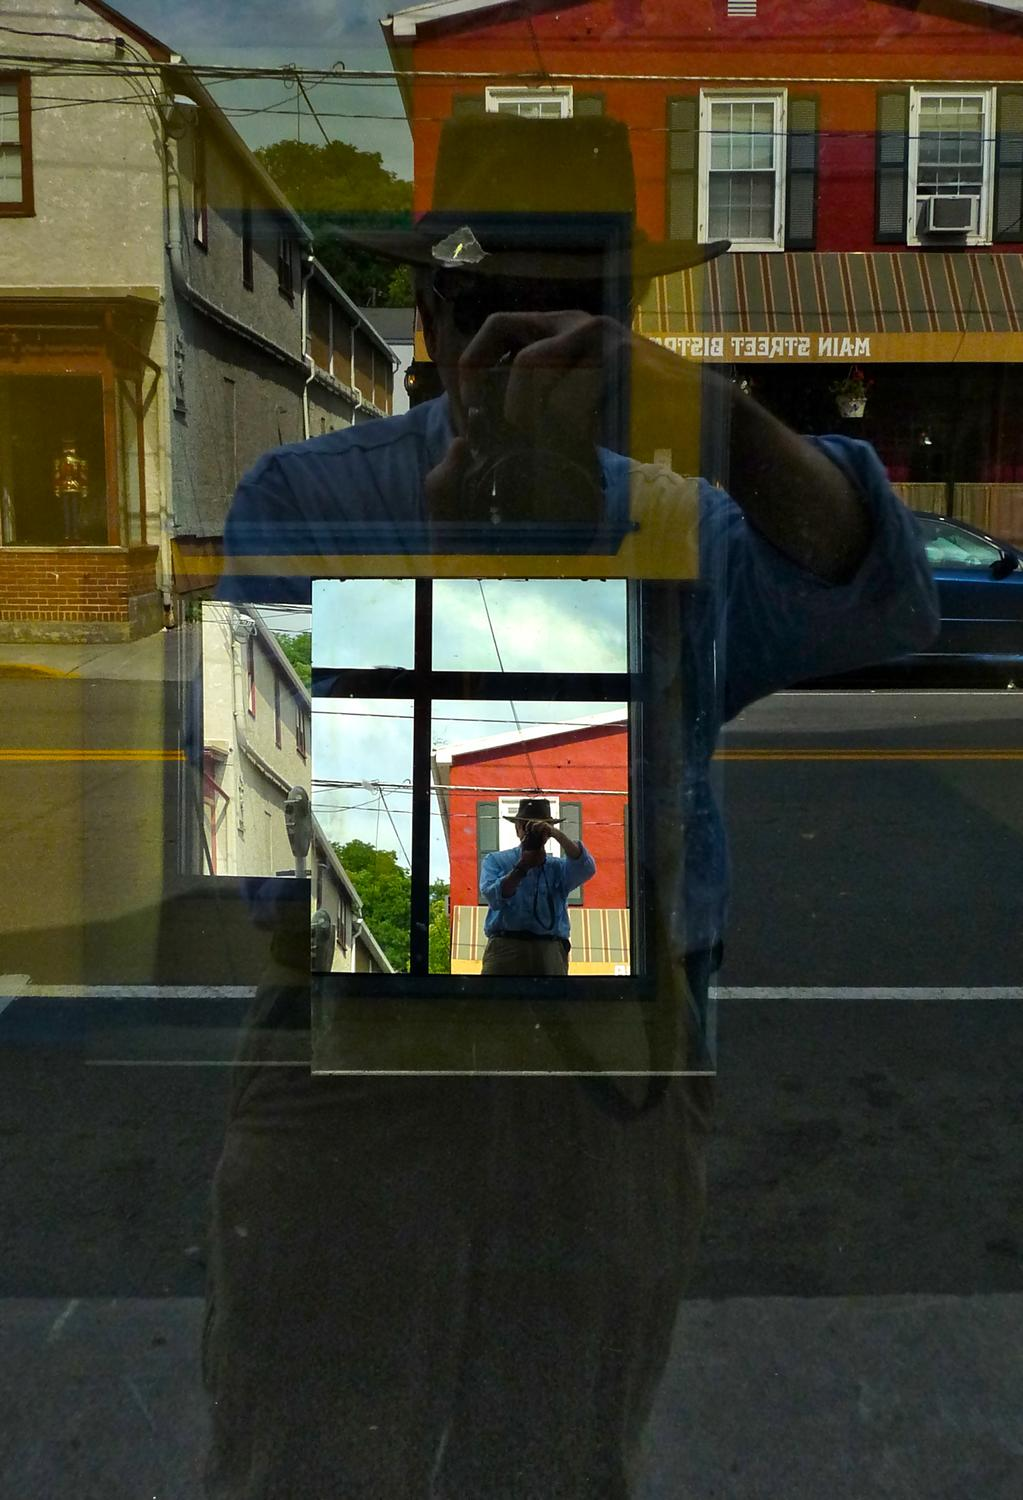 a reflection of the artist in a mirror in a store window - The spirit of René Magritte visits Berryville - Berryville Virginia - Panasonic DMC-FZ28 - Tony Karp, design, art, photography, techno-impressionist, techno-impressionism, aerial photography , drone , drones , dji , mavic pro , video , 3D printing - Books -